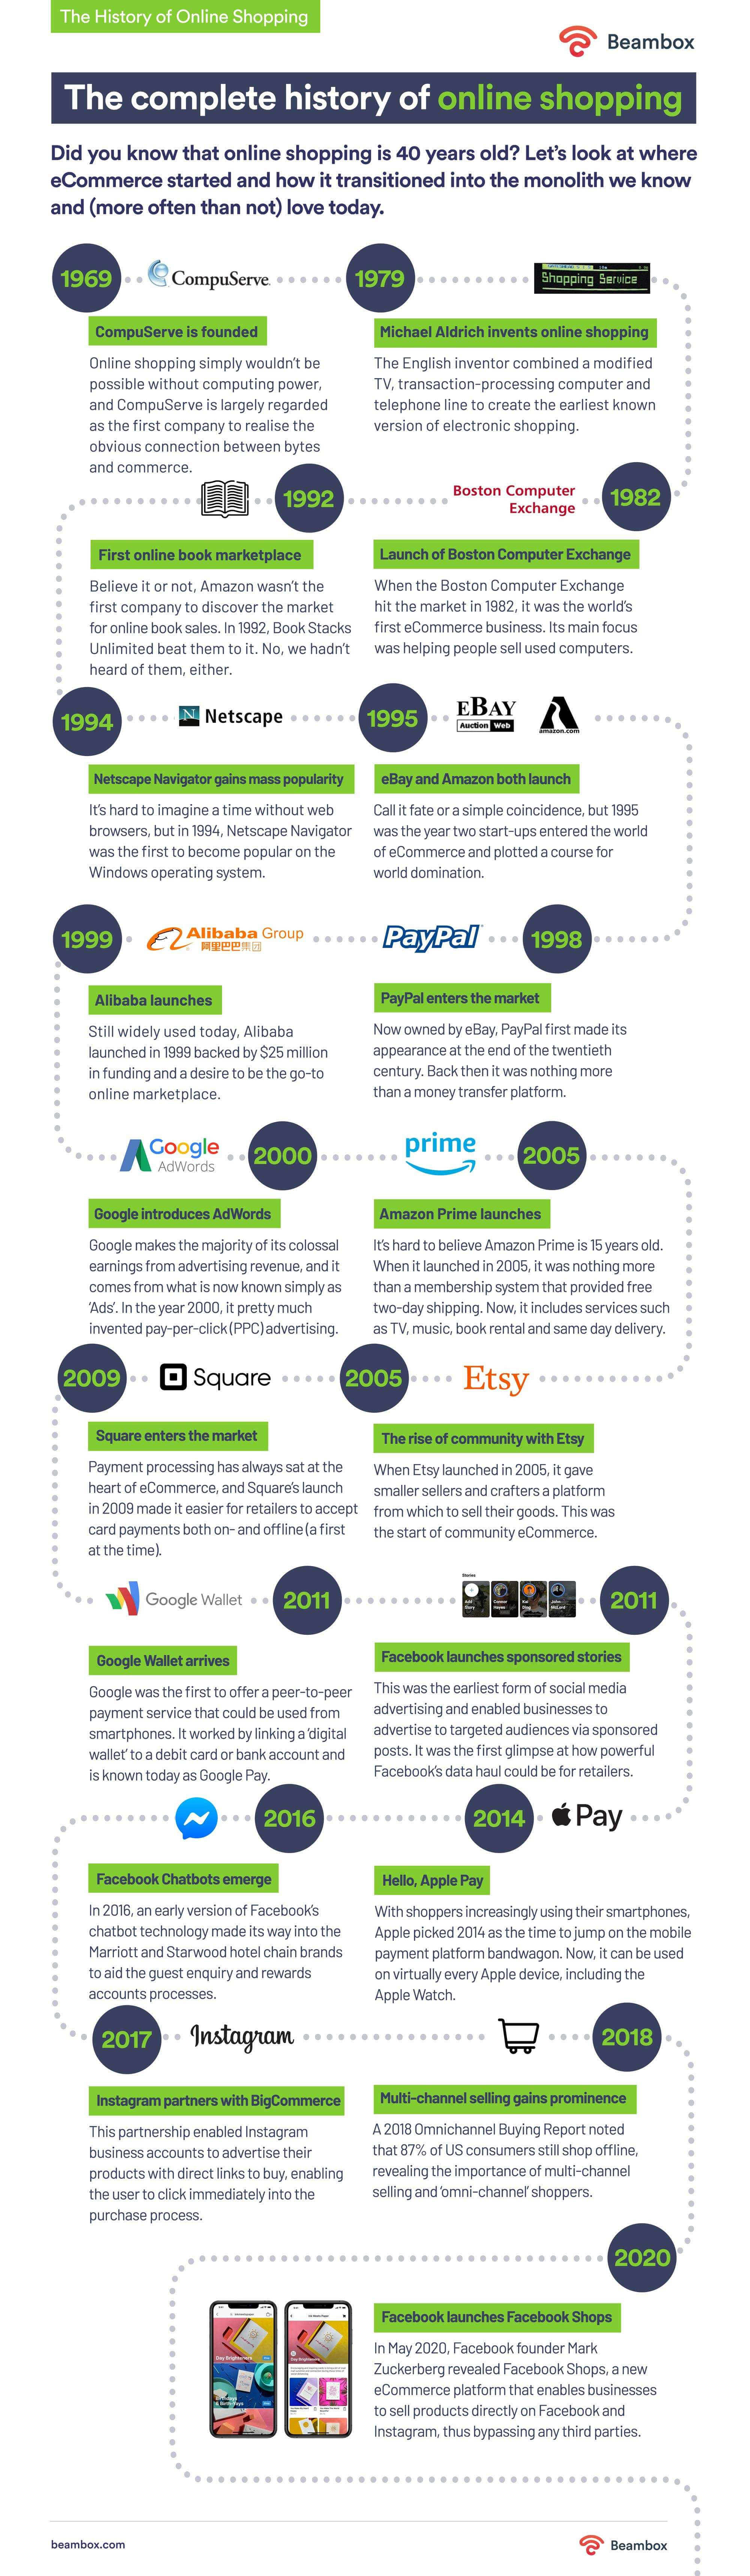 history of online shopping